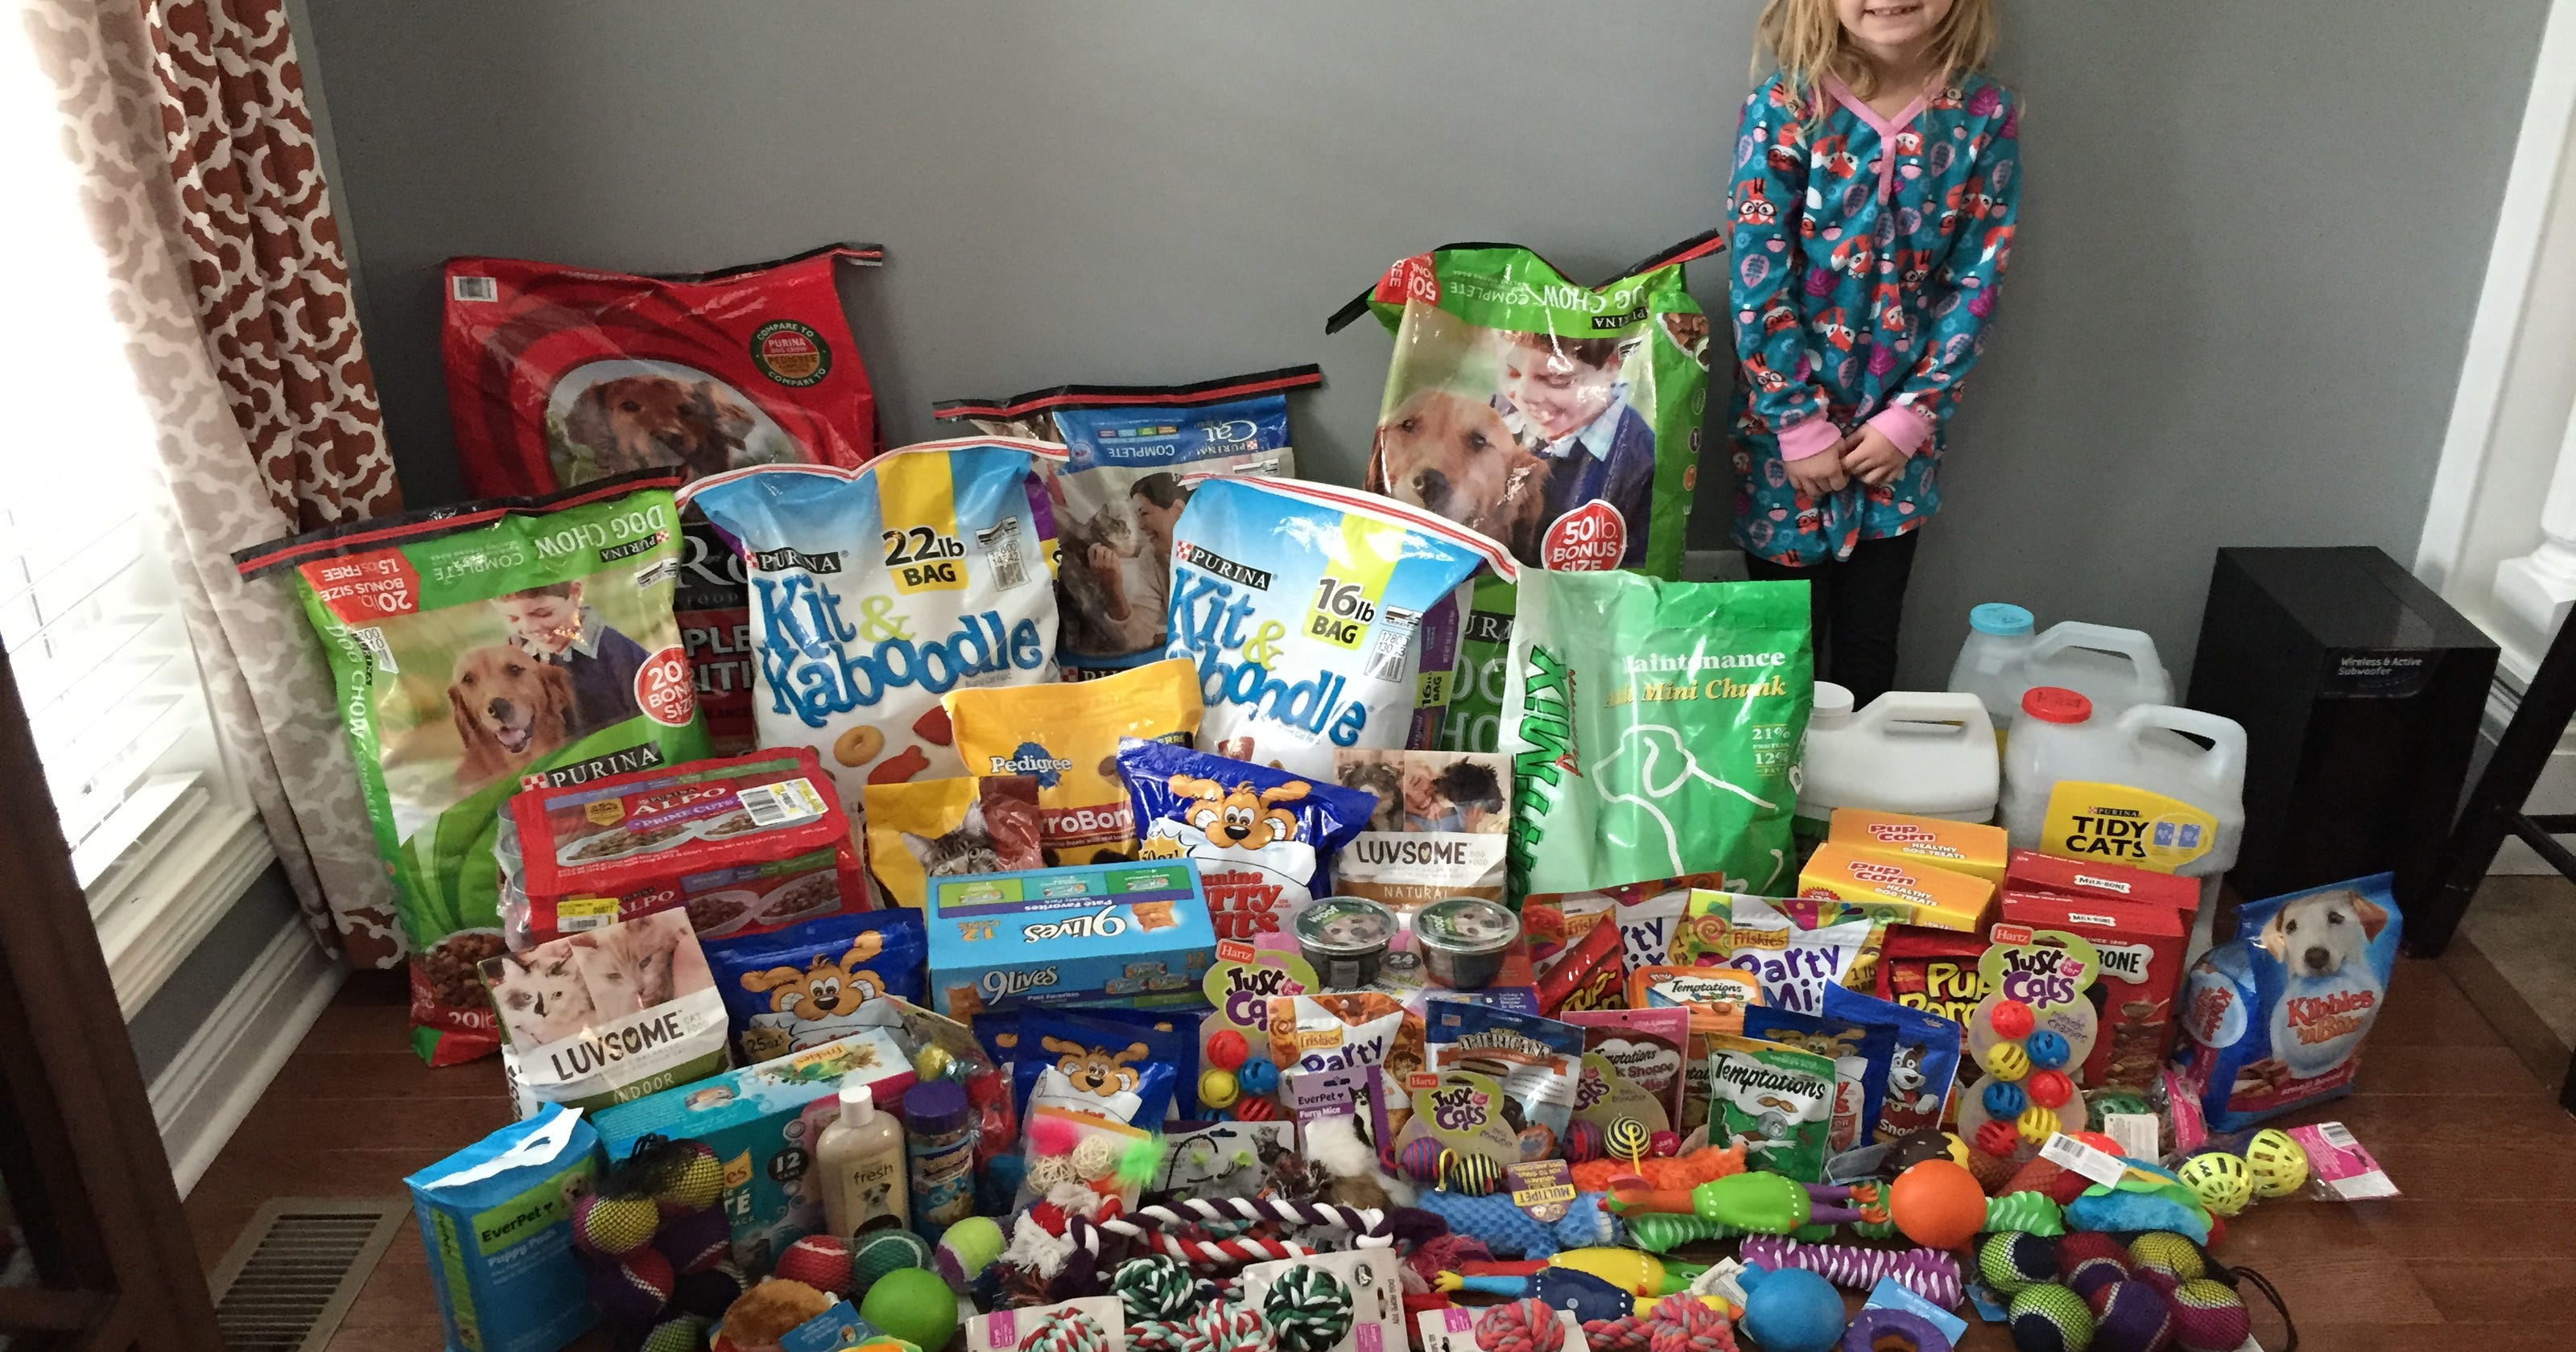 7 Year Old Collects Humane Society Donations For Birthday Gifts